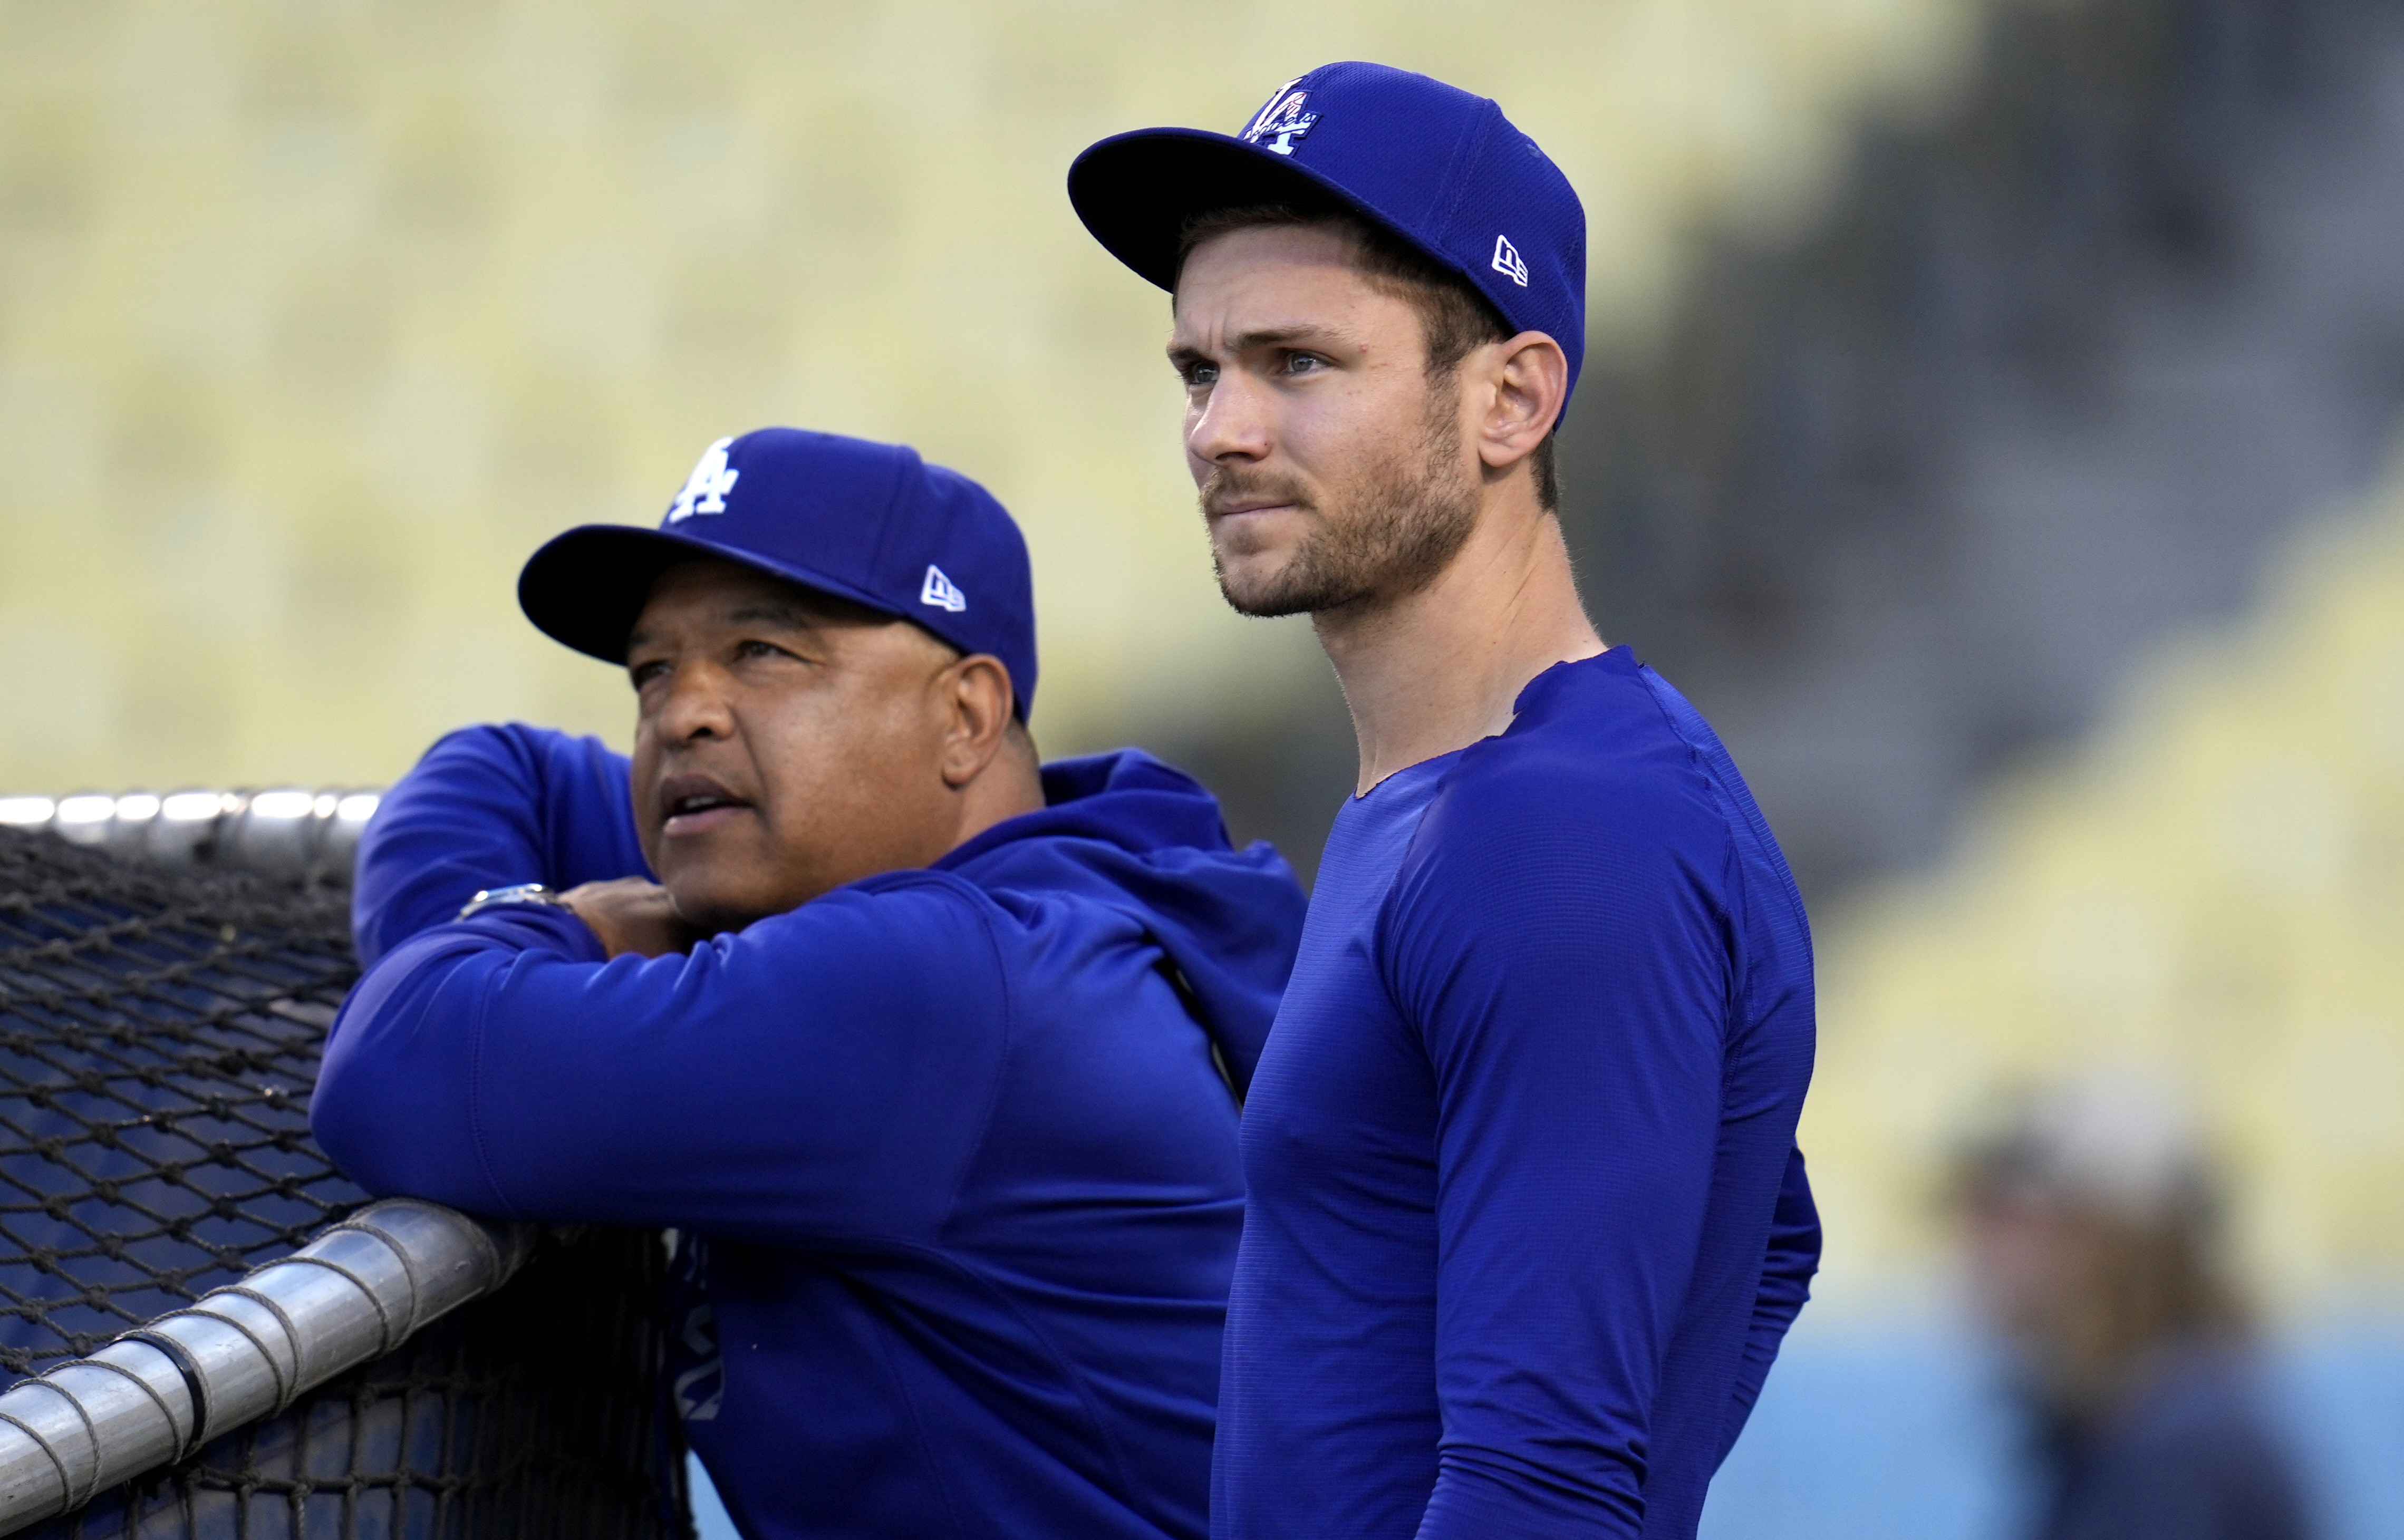 Los Angeles Dodgers and the St. Louis Cardinals during a workout day before the National League Wildcard game at Dodger Stadium in Los Angeles.